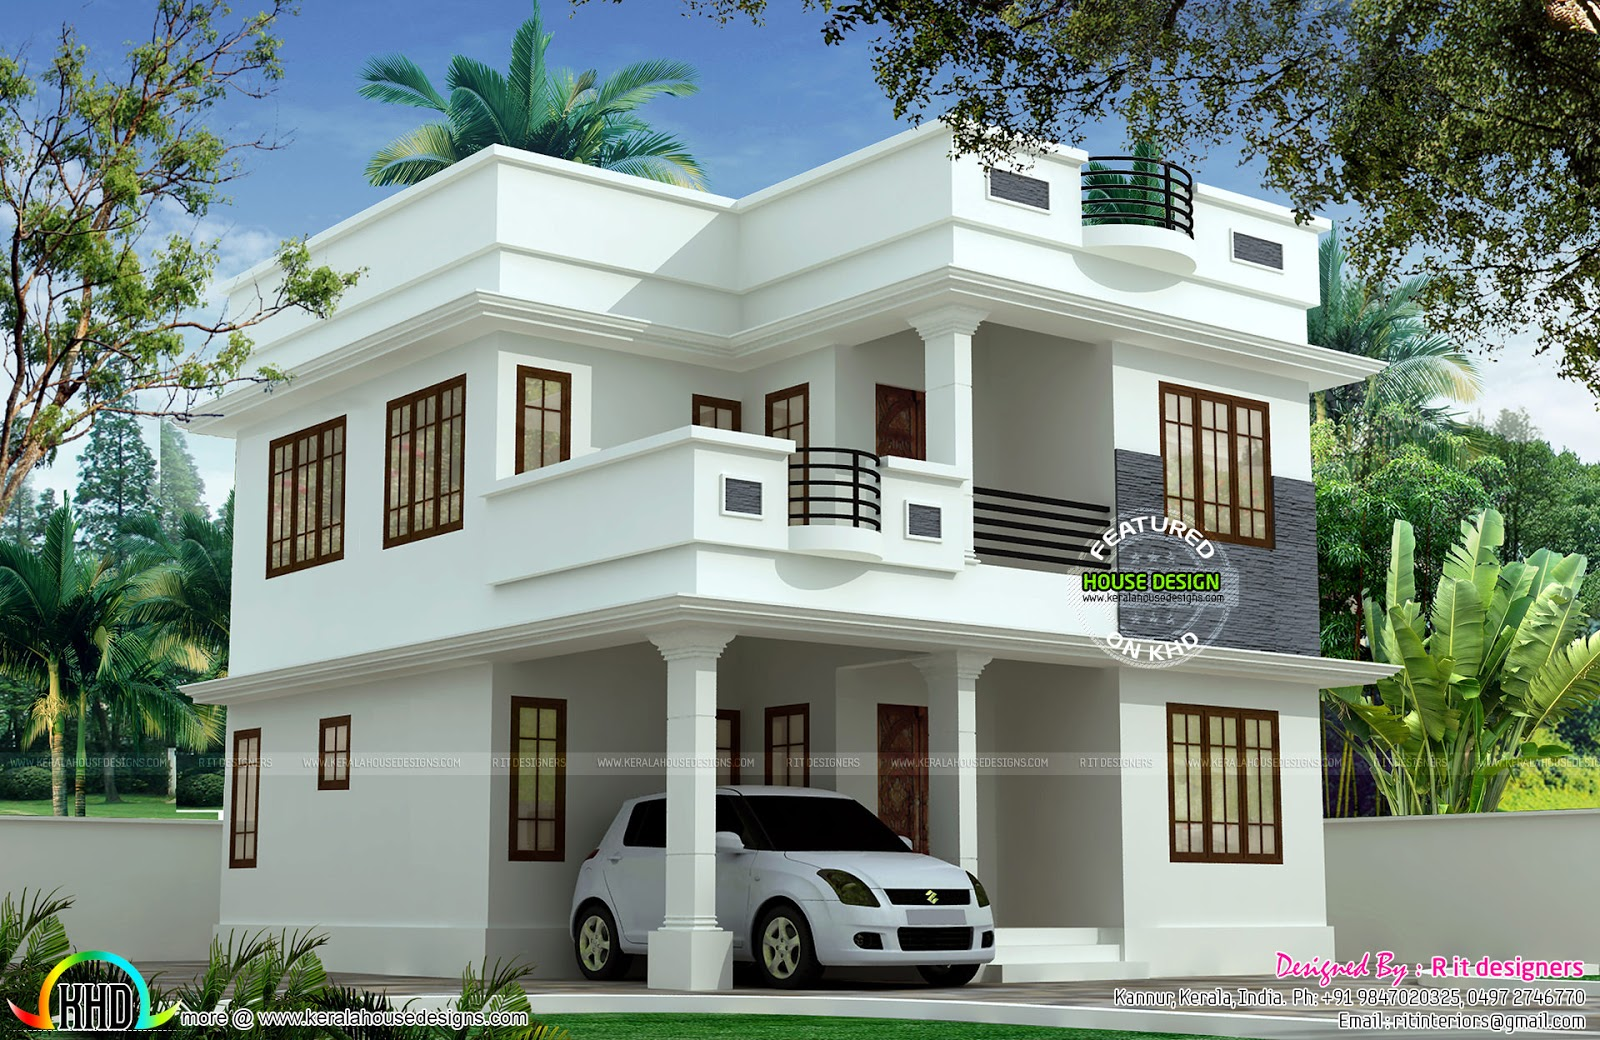 1897 sq ft cute double storied house kerala home design for Kerala home designs photos in double floor